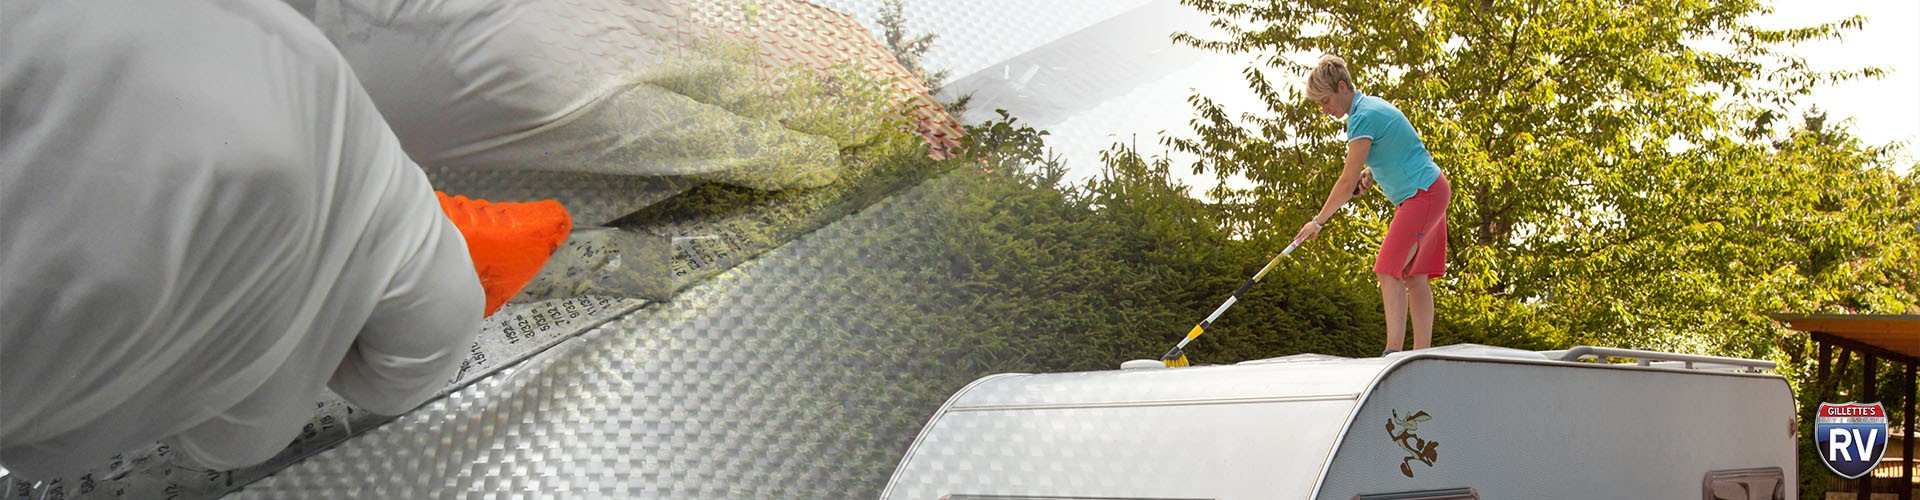 Fiberglass Roof Maintenance - Keep Your Roof in Top Shape  Gillettes